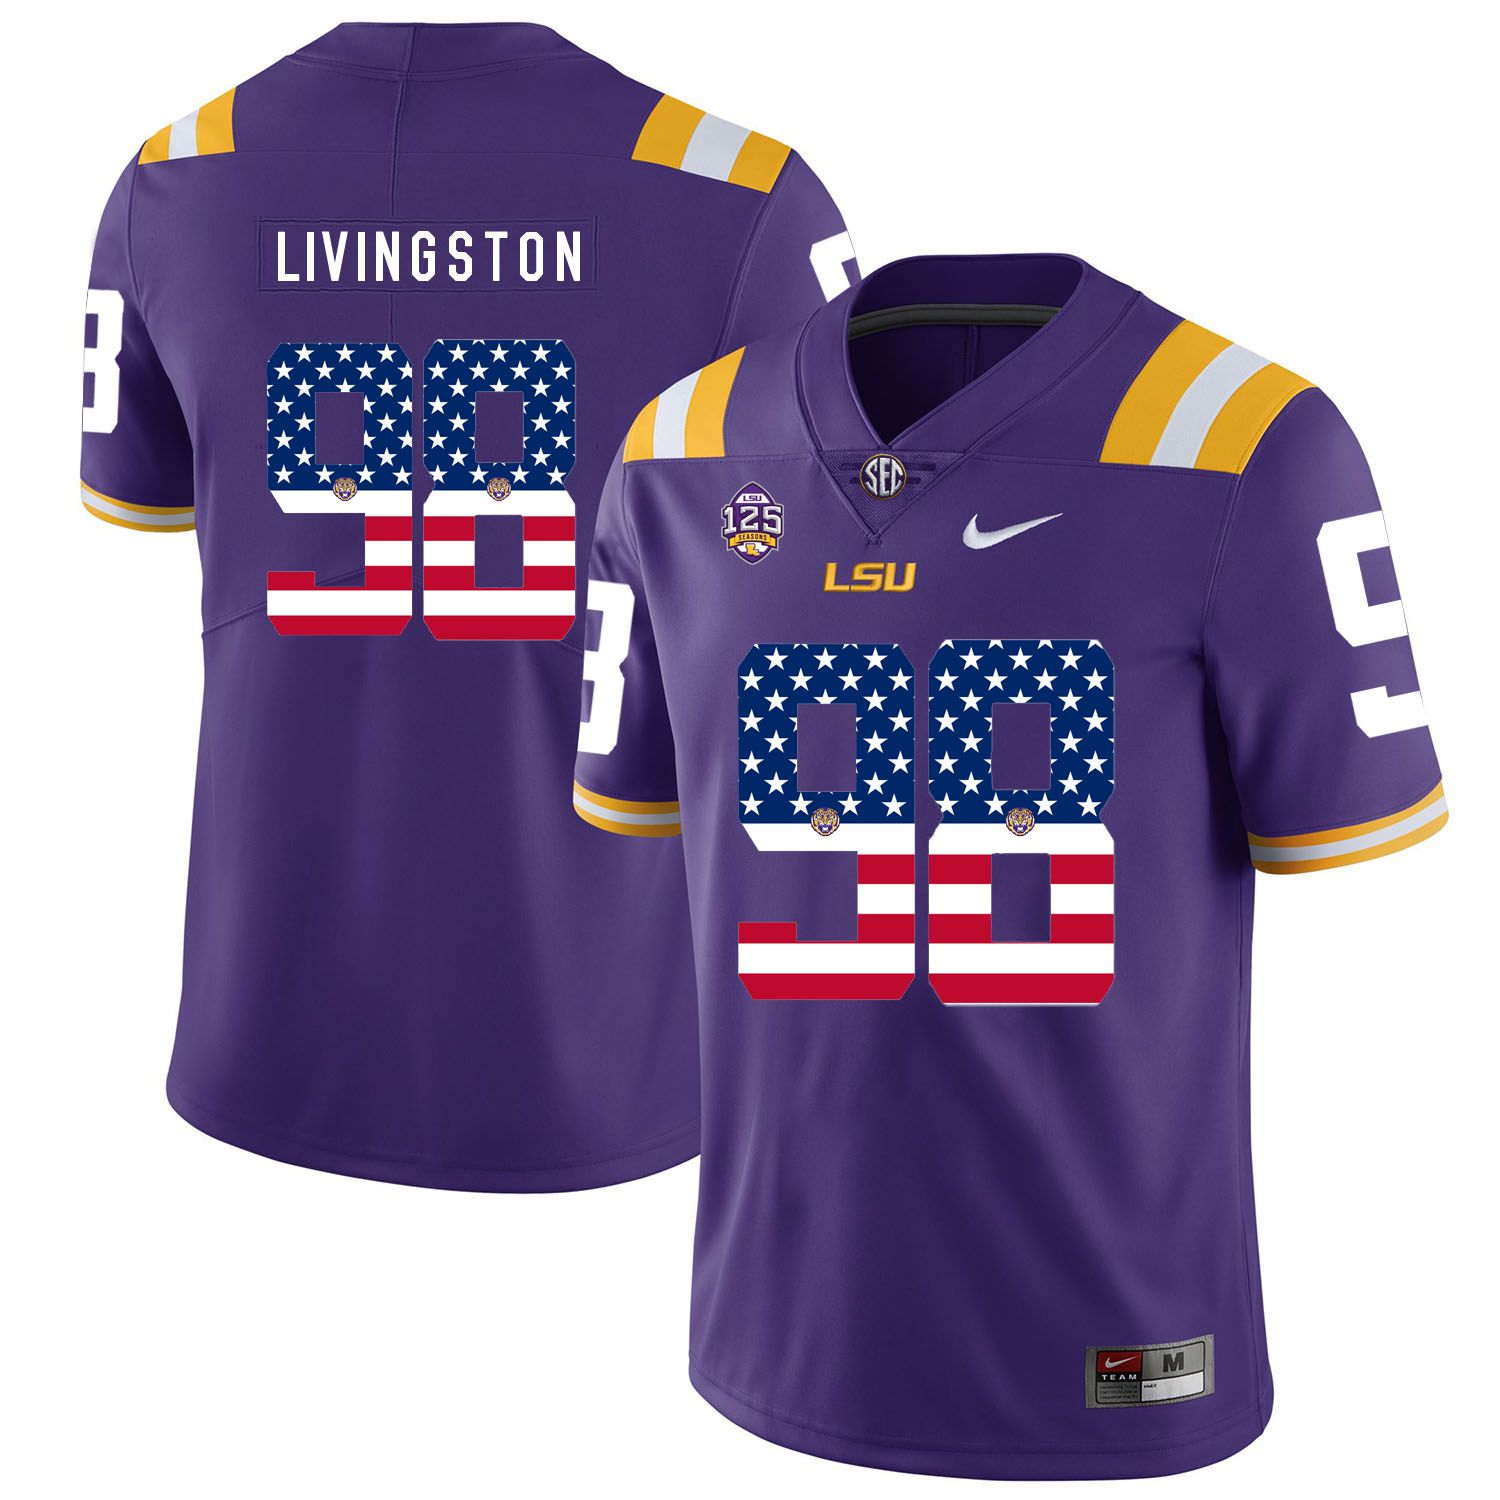 Men LSU Tigers 98 Livingston Purple Flag Customized NCAA Jerseys